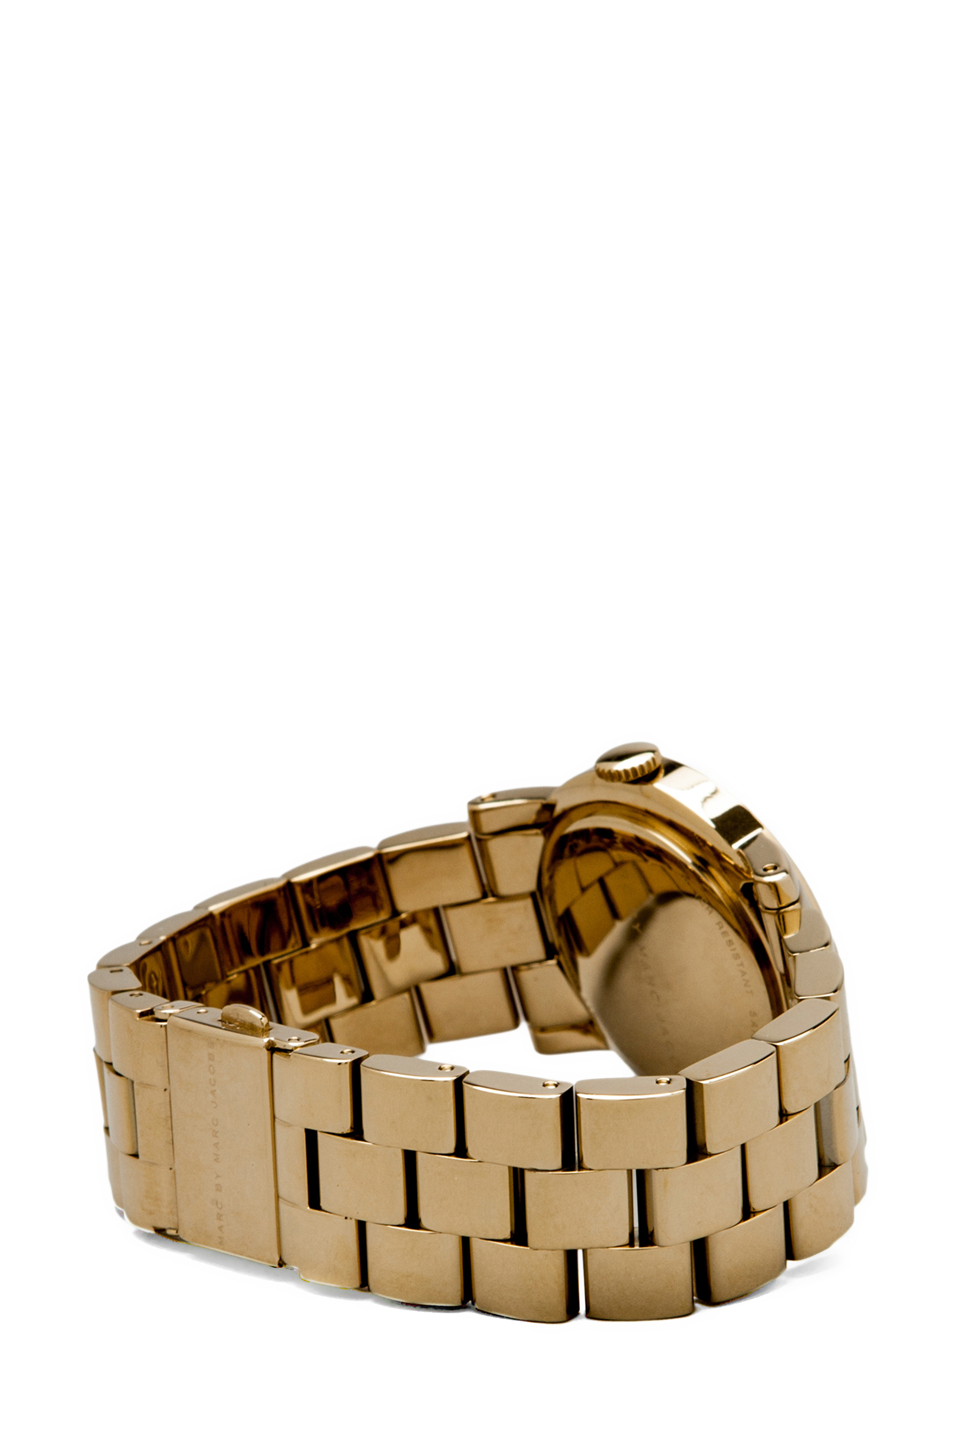 Marc by Marc Jacobs Amy Dexter Watch in Gold